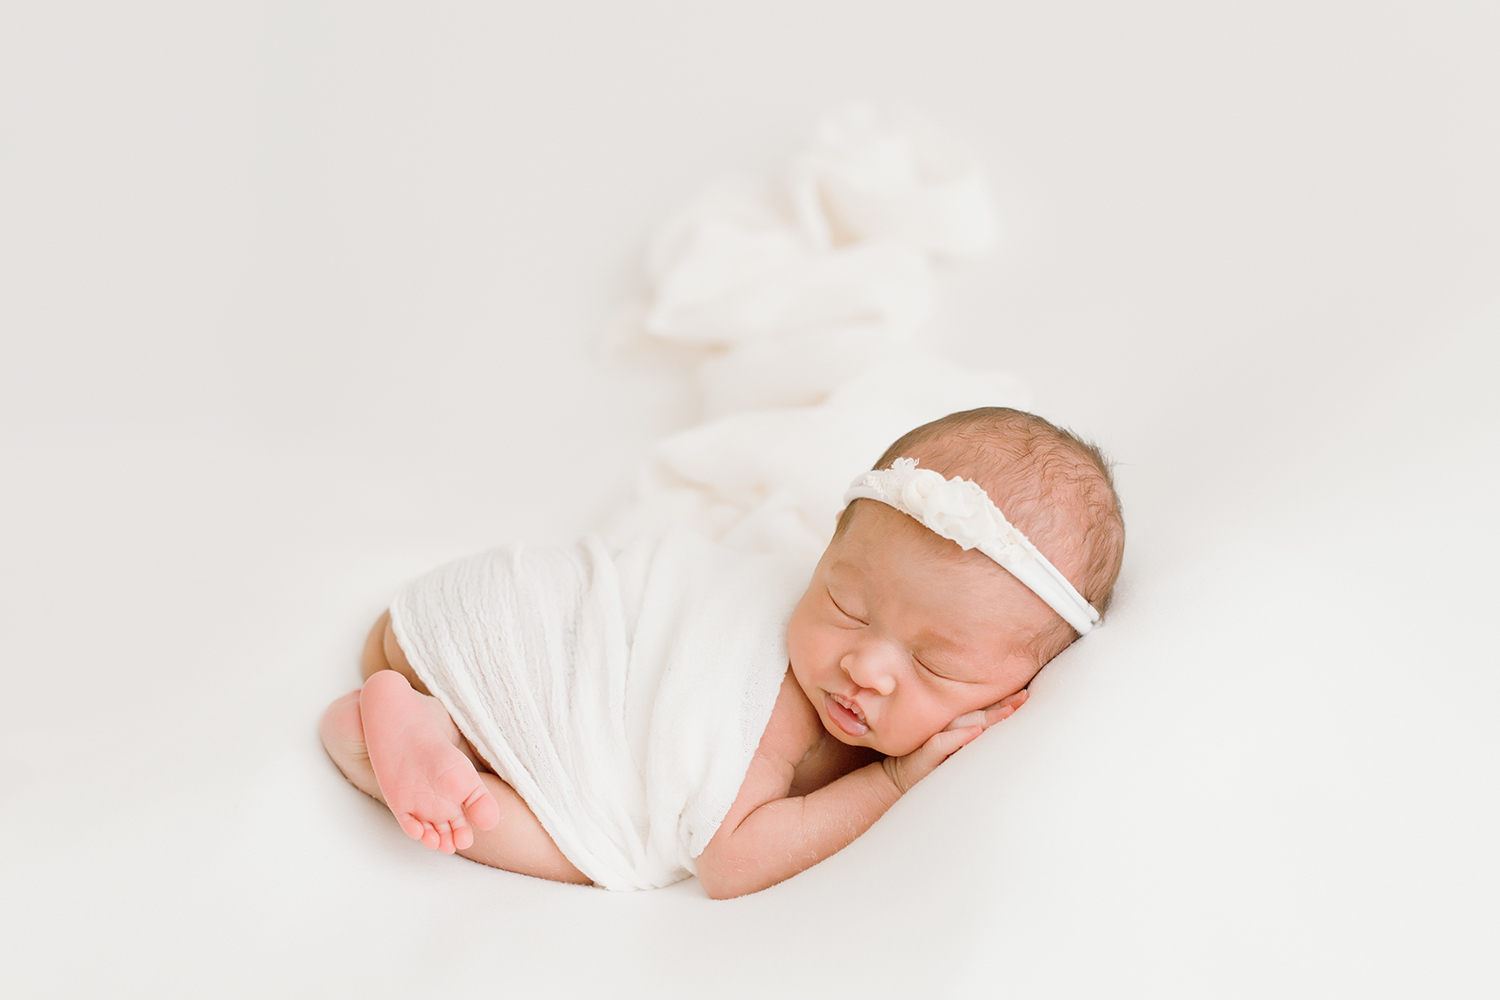 Northern-VA-Newborn-Photographer-Northern-VA-Newborn-Photographer-215.jpg